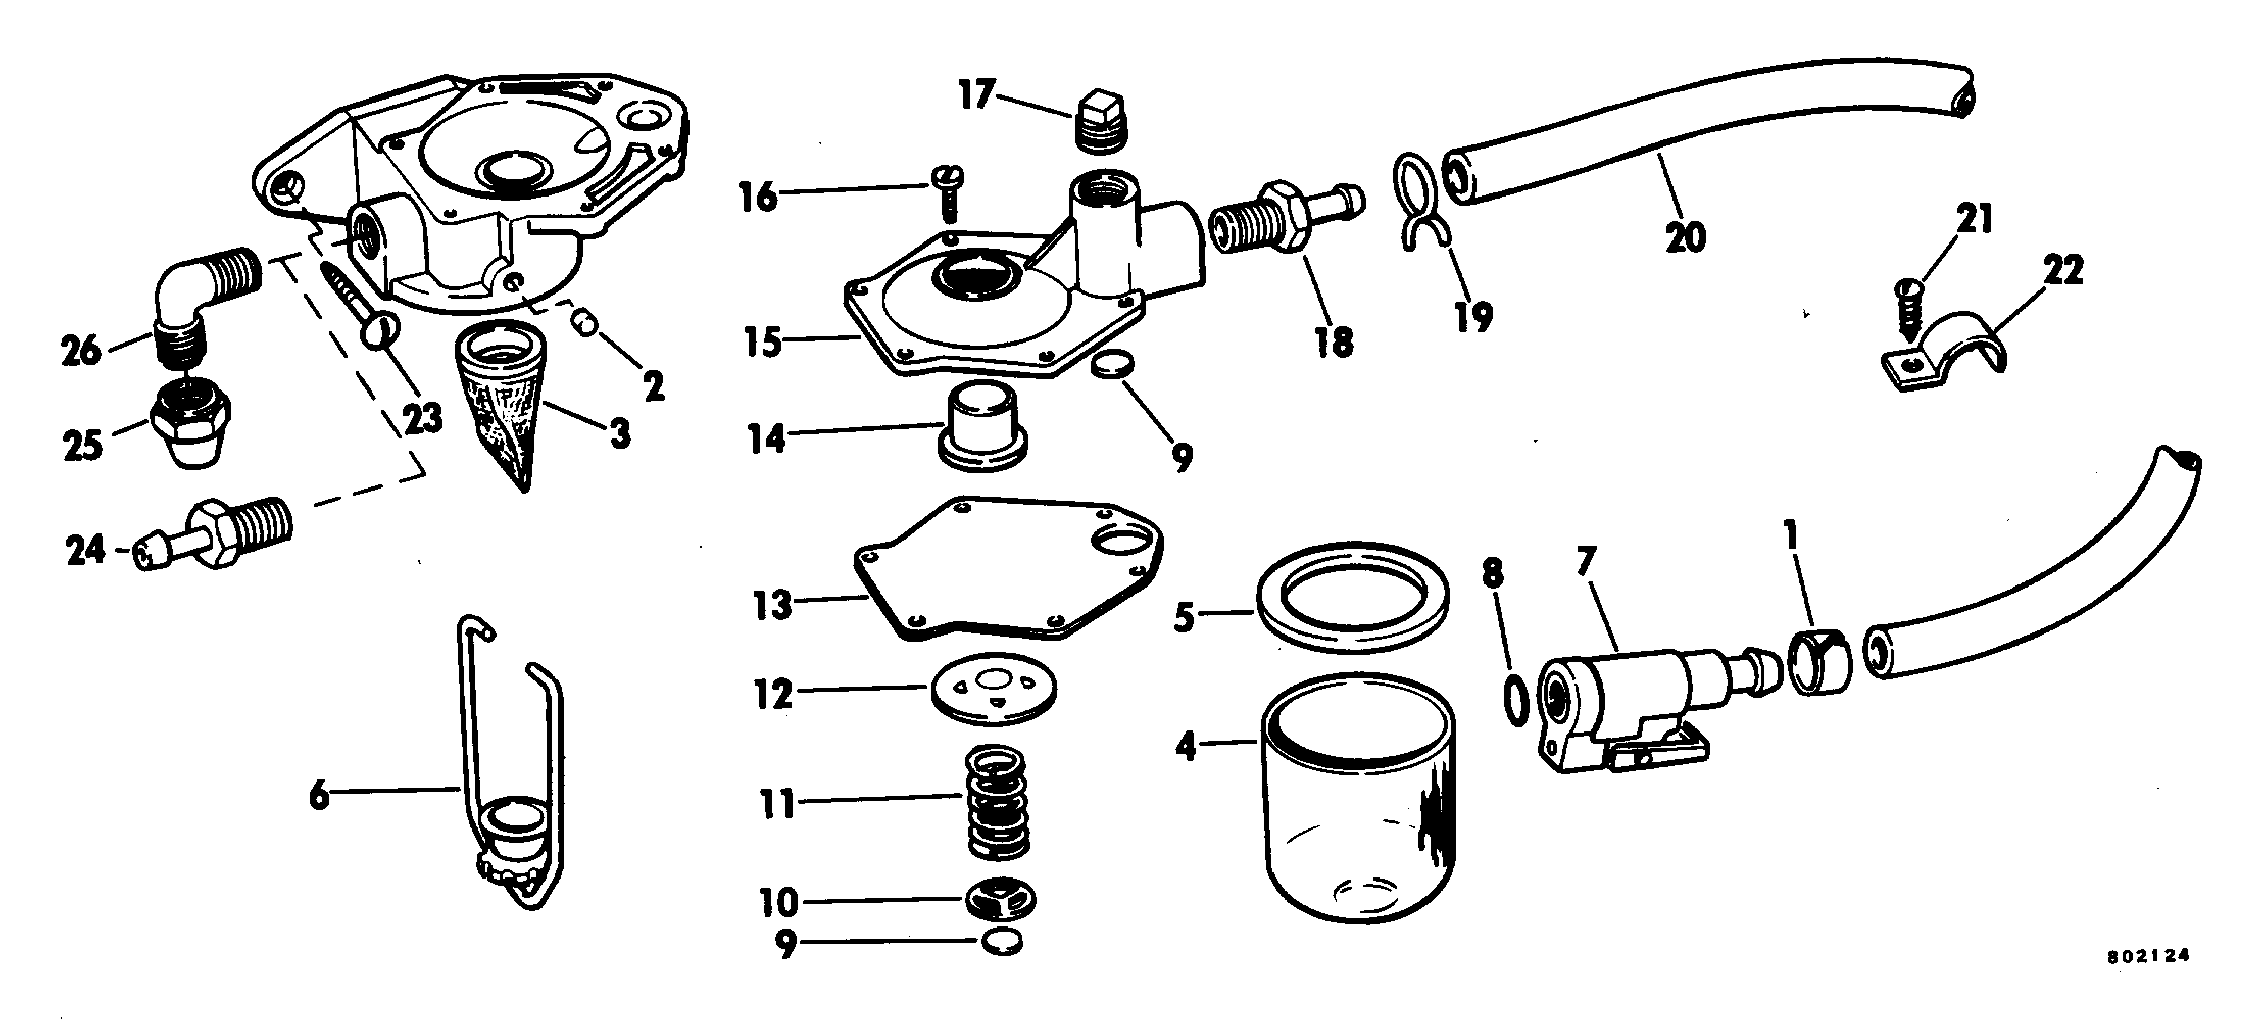 Primer Pump Kit Fuel System 1983 Accessories for 1983